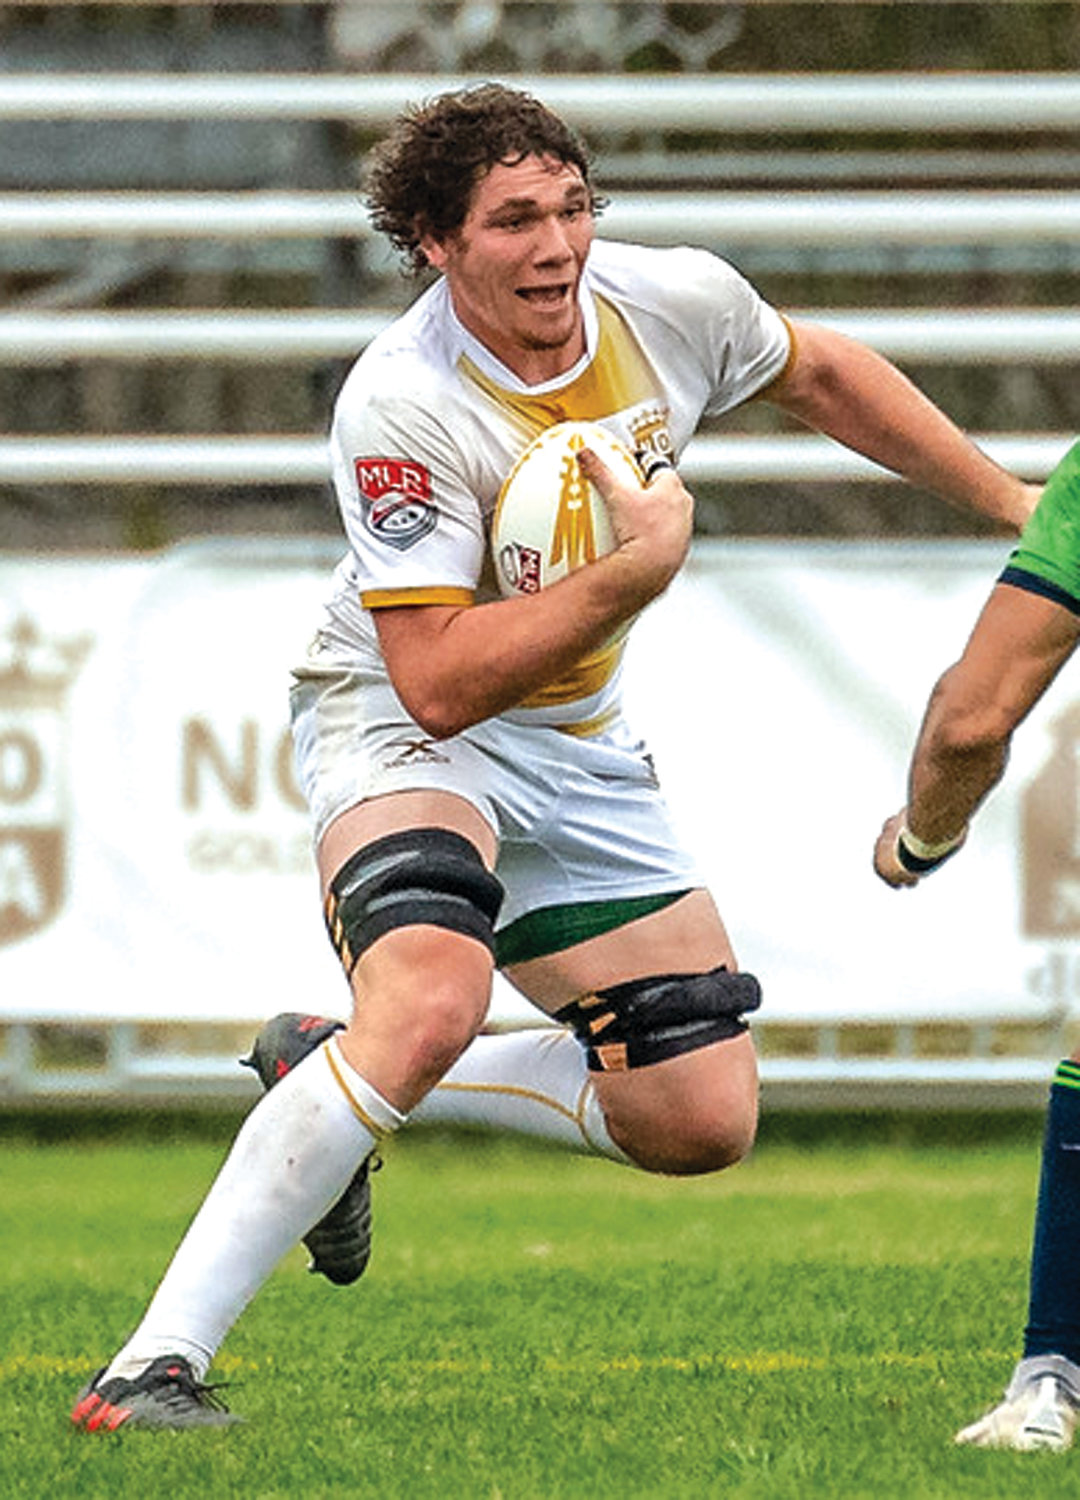 CARRYING ON: Warwick native and NOLA Gold rugby player Billy Stewart.